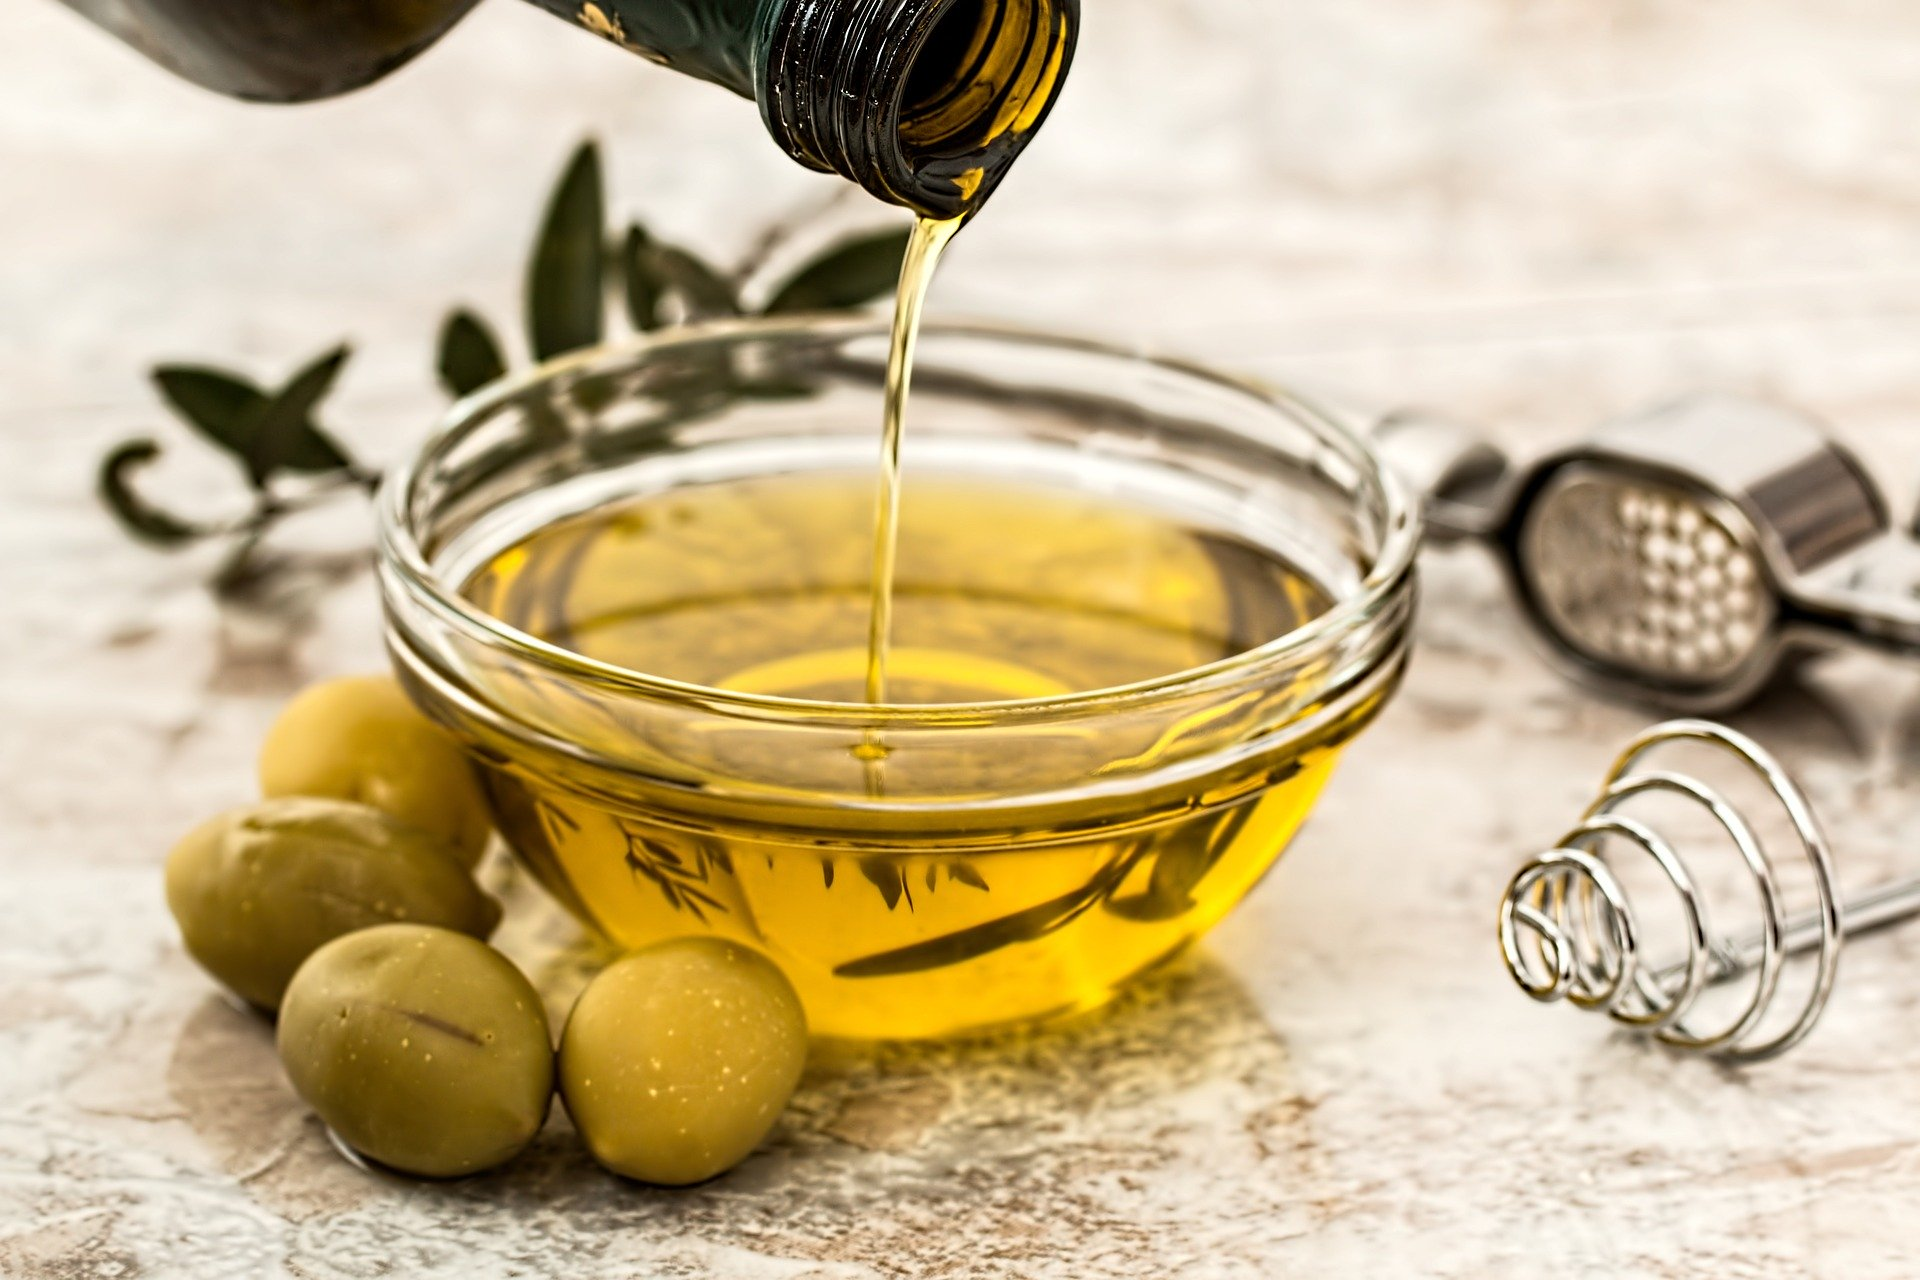 olive oil being pour into a small glass bowl with olive decorations, an extractor and whisk around it